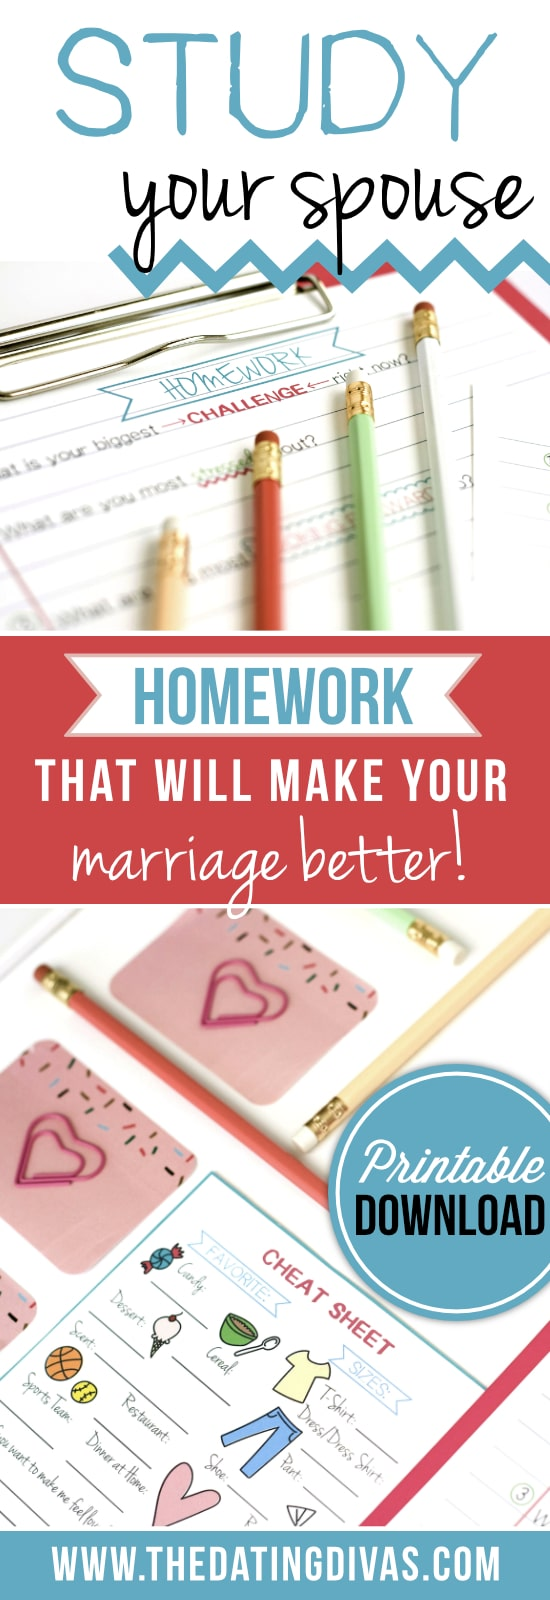 Make your marriage better by studying your spouse!